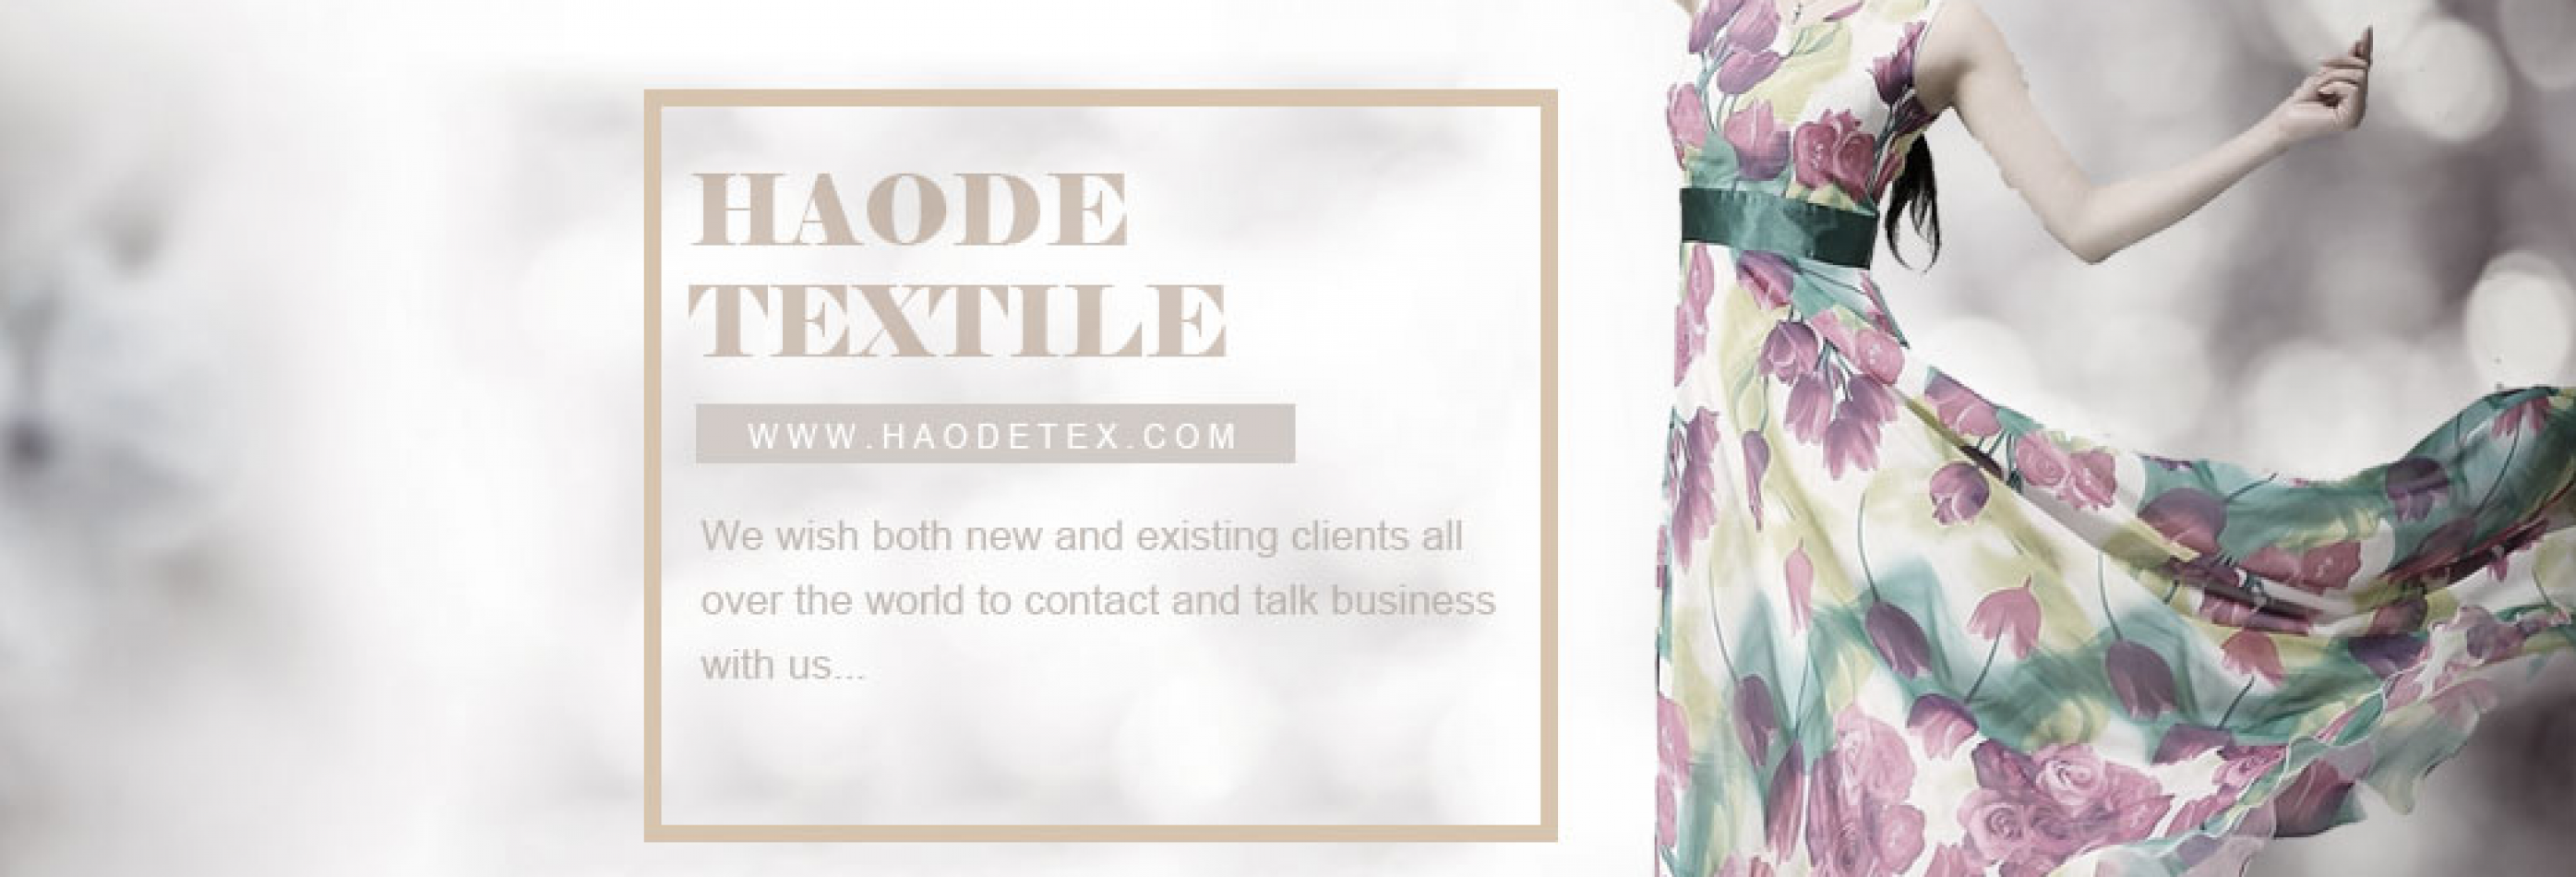 CHANGZHOU HAODE TEXTILES CO. LTD.